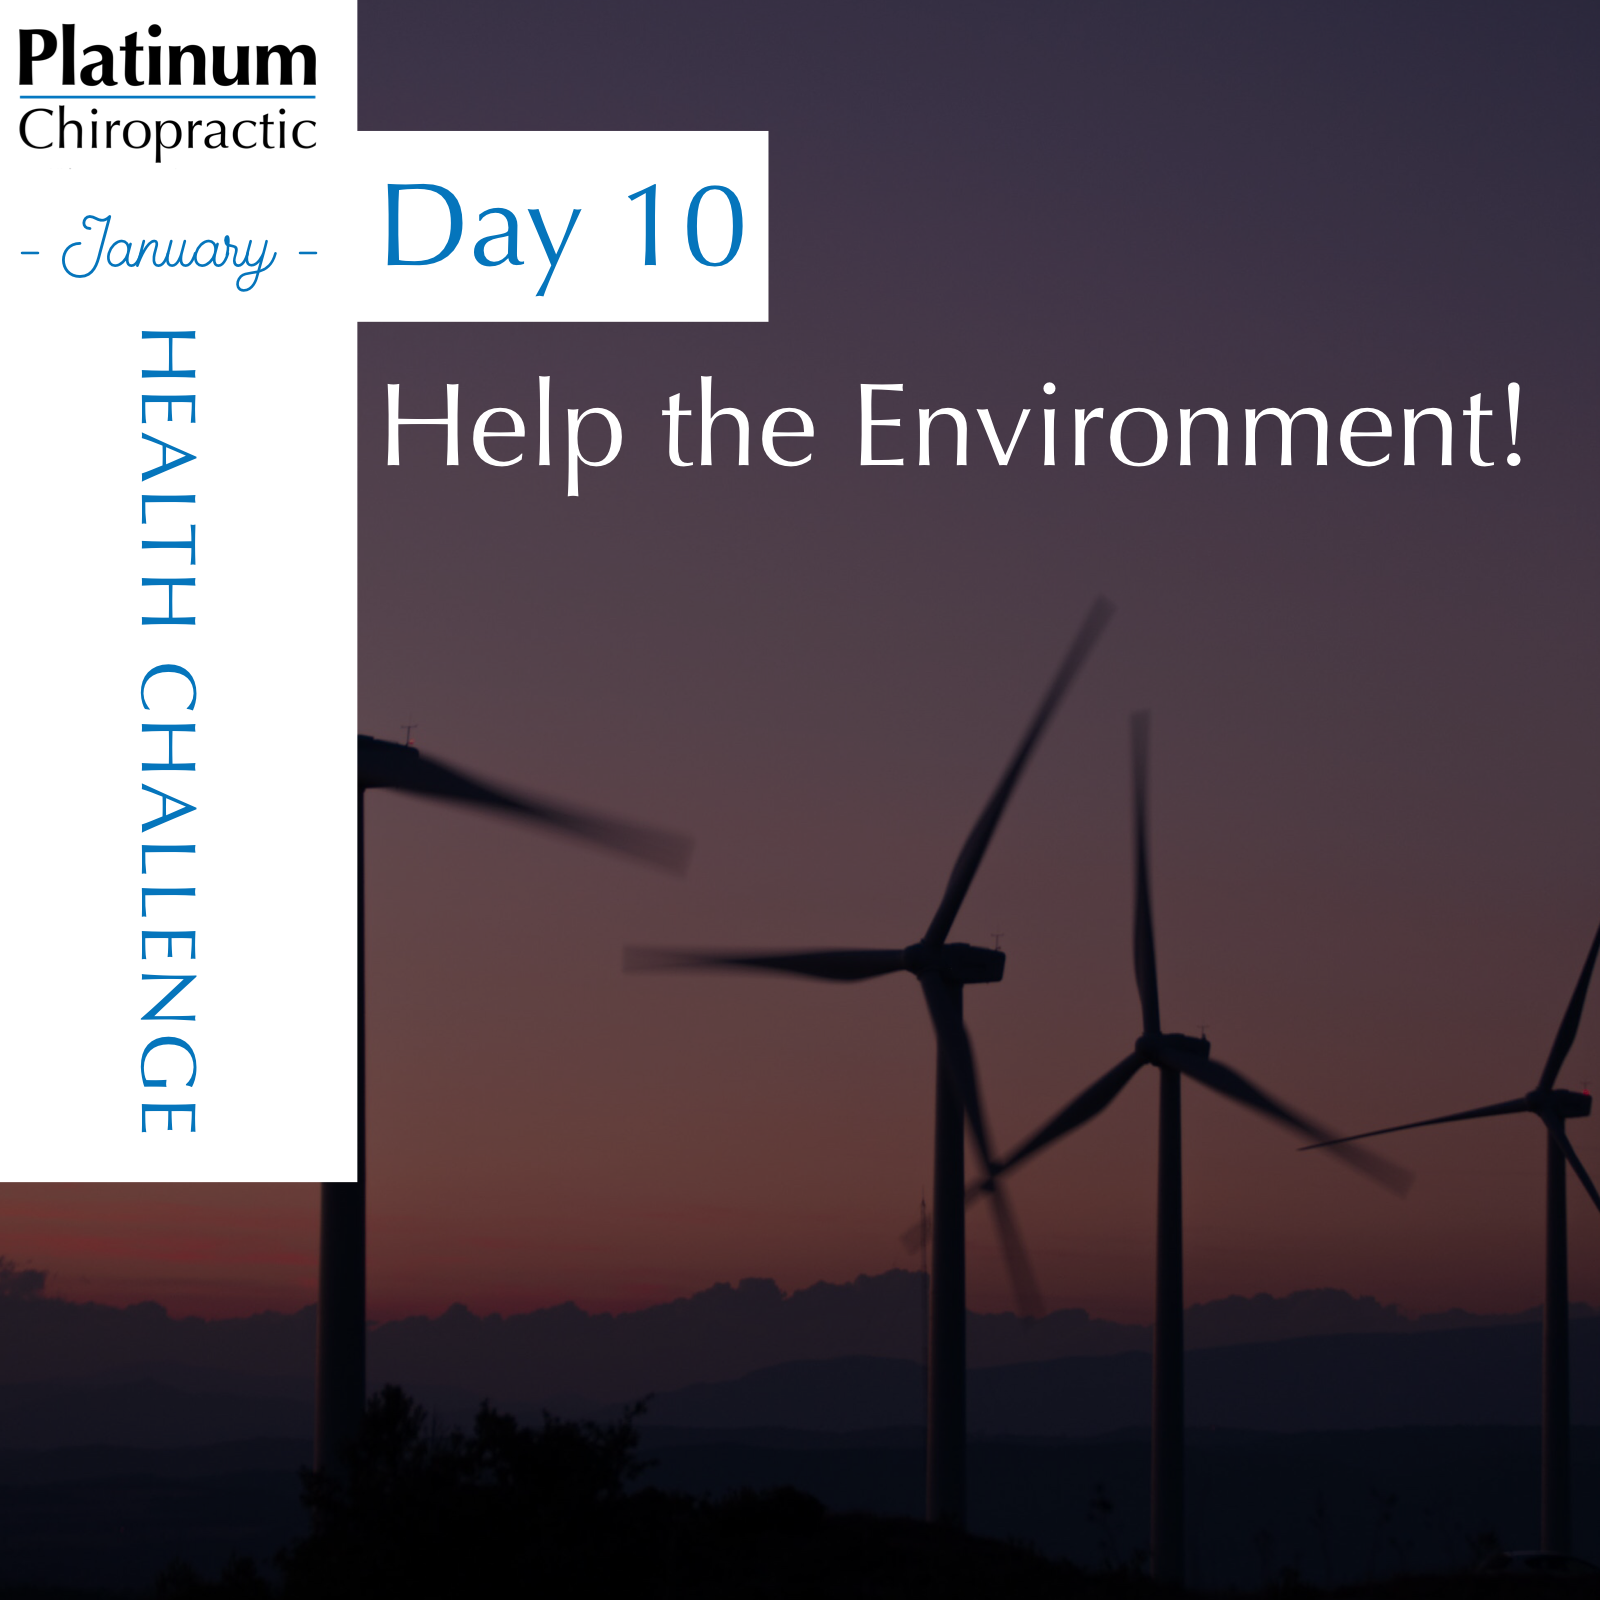 Share with us how you are helping the environment today.